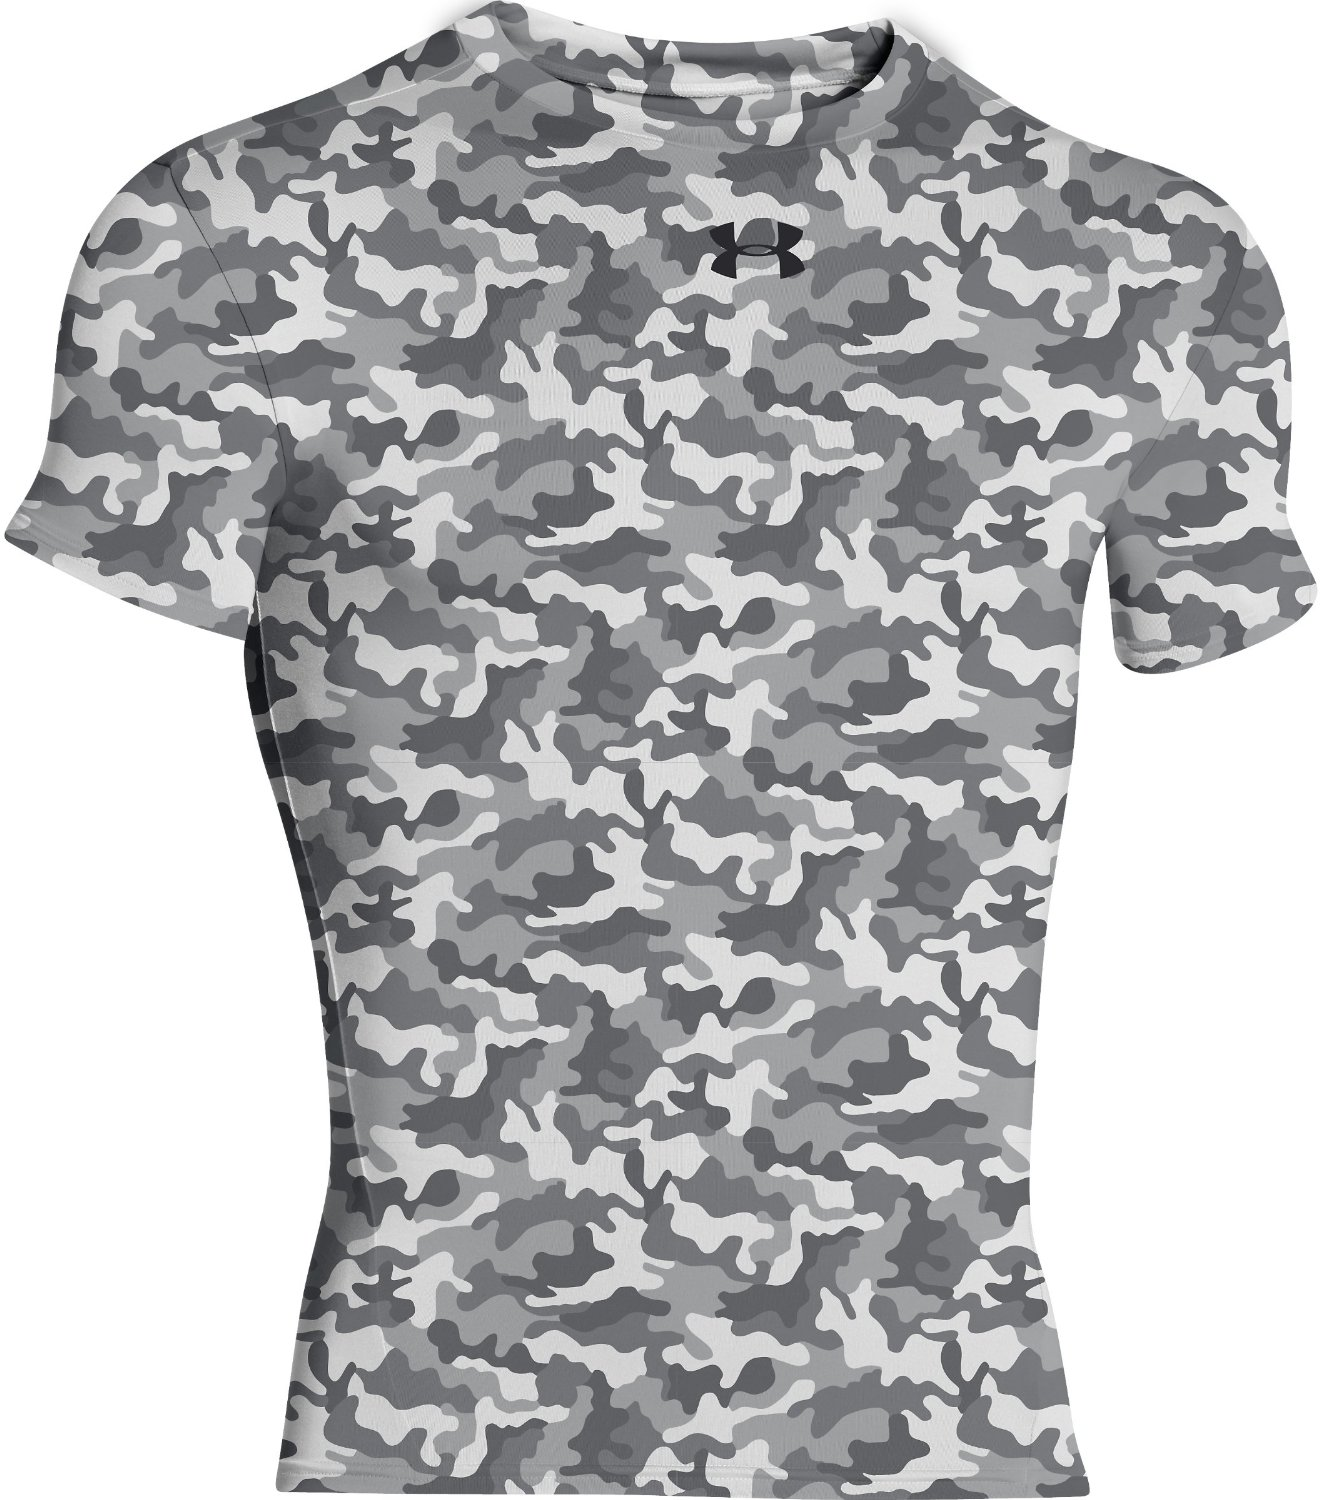 37512bf7010af Get Quotations · Men s Under Armour Camo Locker Short Sleeve T-Shirt White  Camo 1268476-100 (